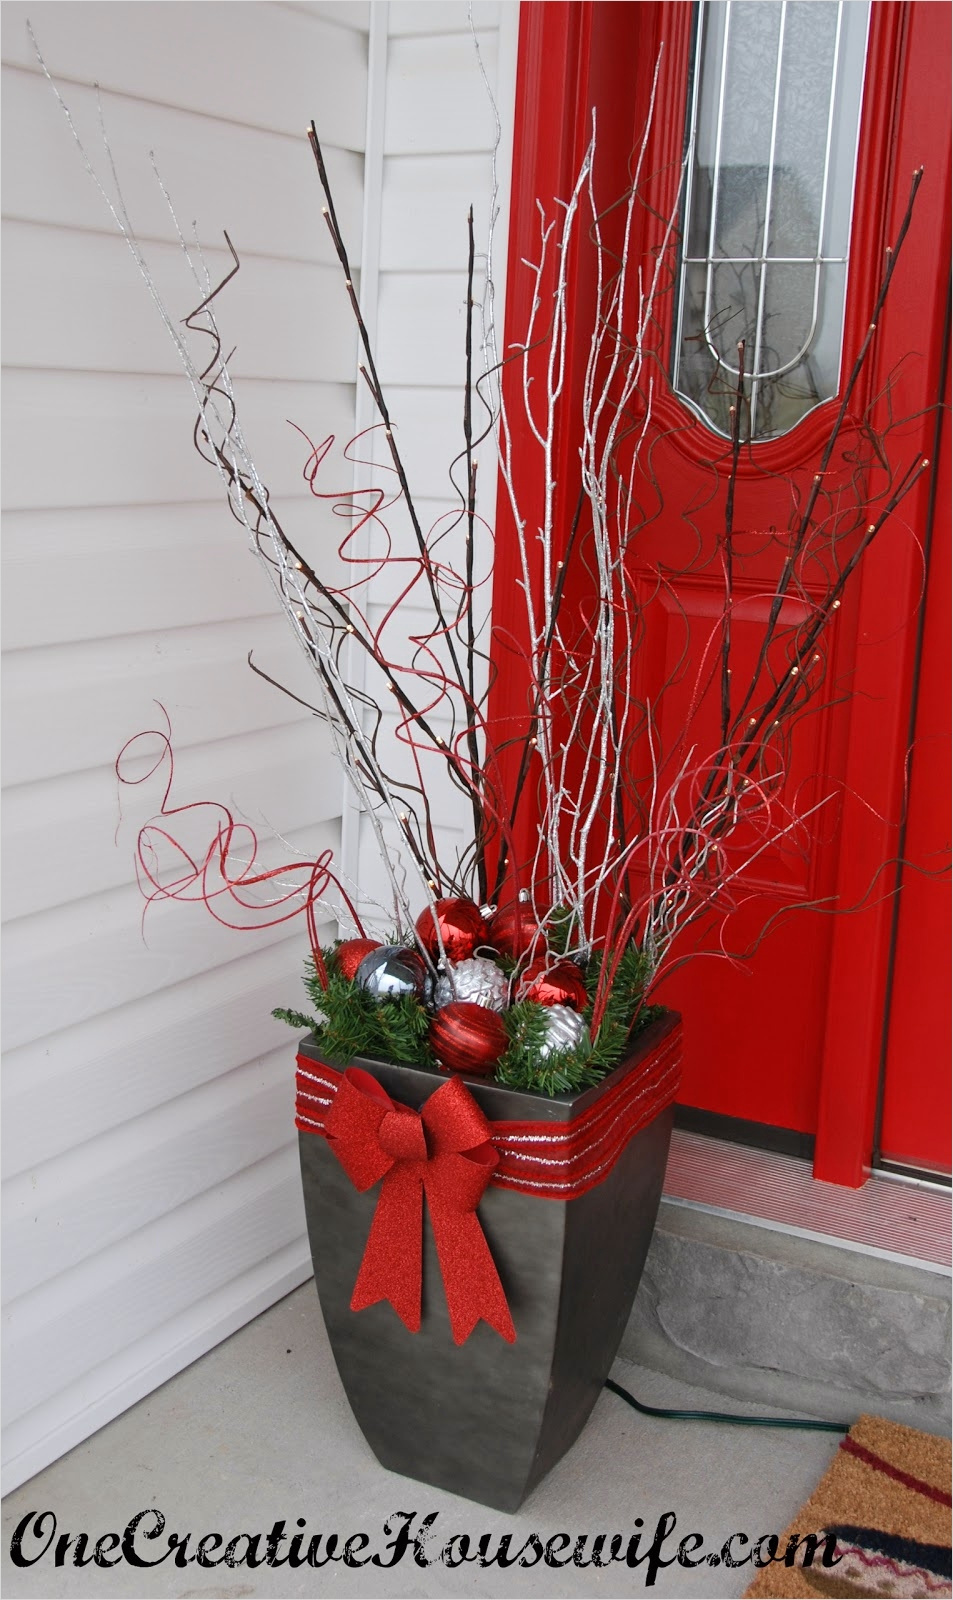 42 Beautiful Christmas Outdoor Pot Decorations Ideas 97 E Creative Housewife My Outdoor Christmas Decorations 5